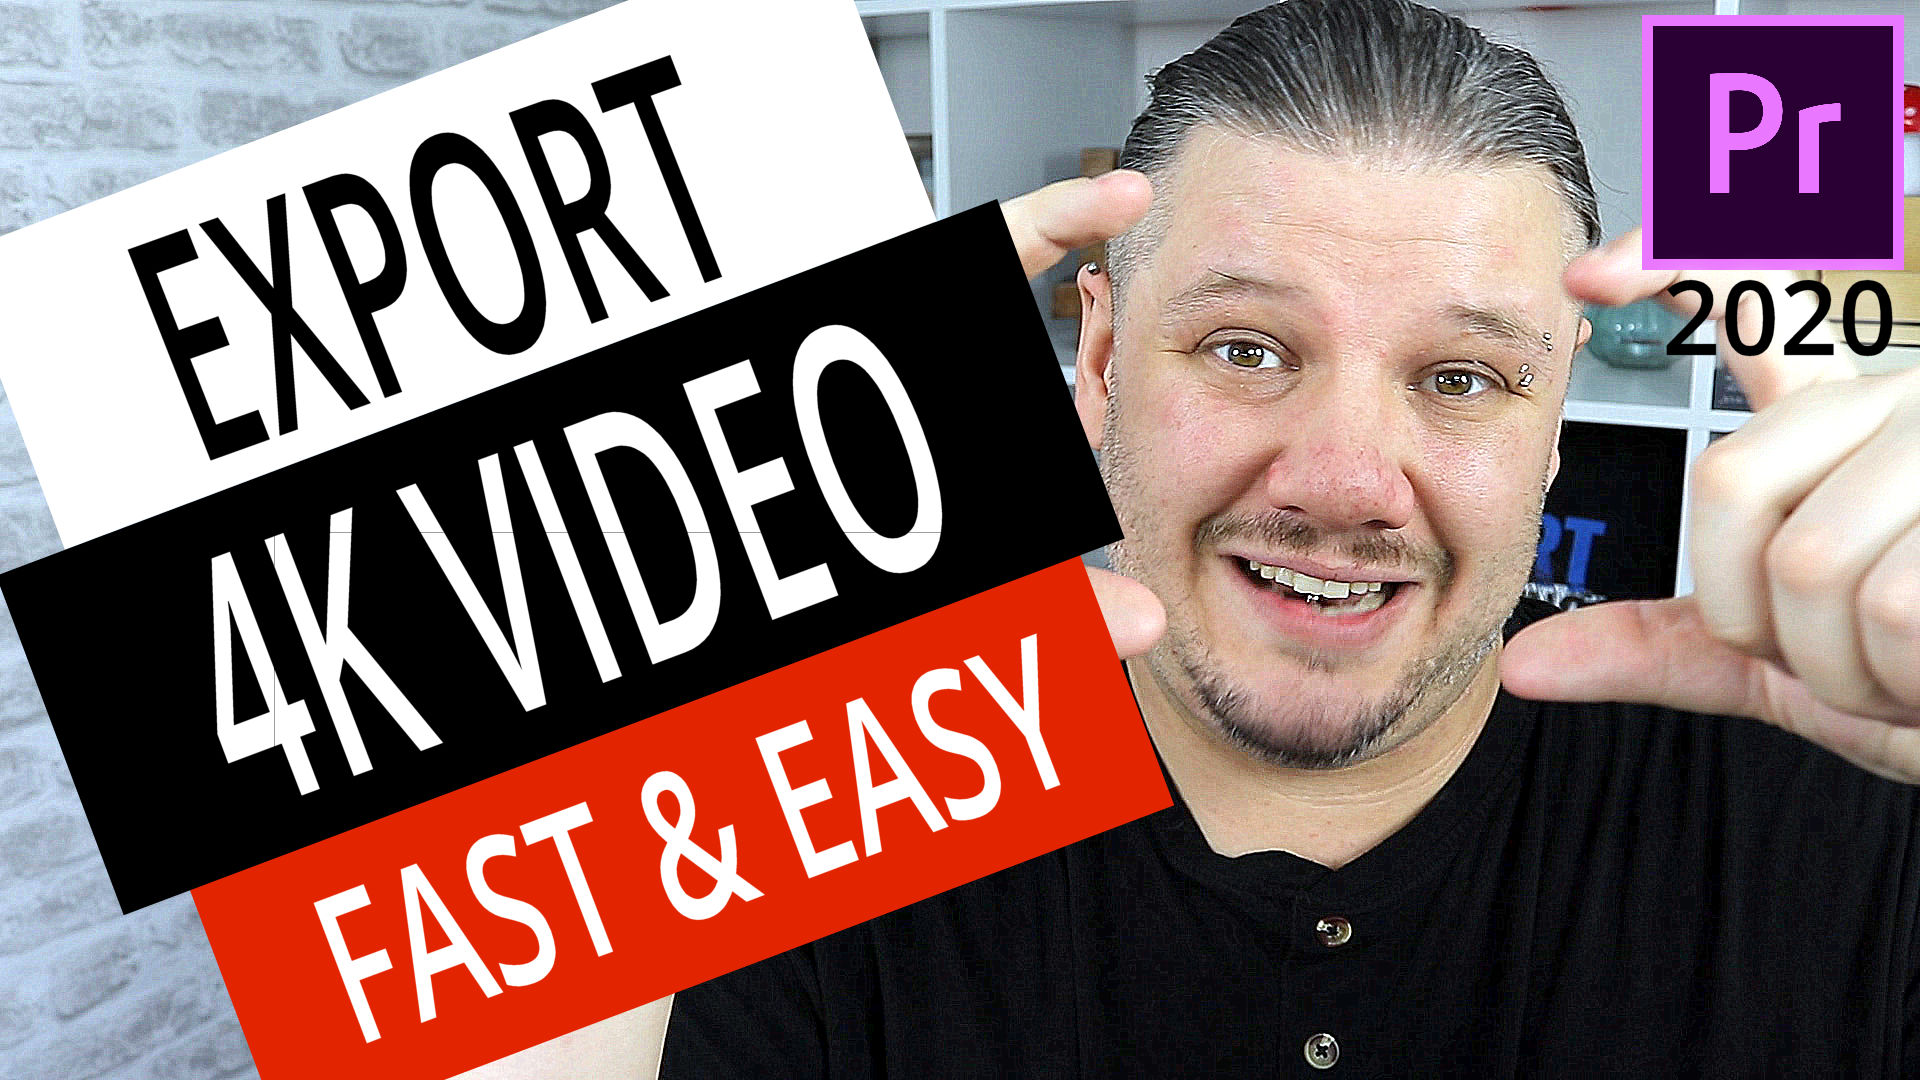 alan spicer,premiere pro export settings,best export settings adobe premiere pro cc,export 4k video,export 4k premiere pro,how to export 4k video,how to export 4k,how to export 4k in premiere pro,how to export 4k video in premiere pro,how to export 4k adobe premiere pro,export 4k adobe premiere,how to export 4k using adobe premiere pro,adobe premiere pro 2020,adobe premiere pro cc 2020,adobe premiere pro tutorial,4k settings adobe premiere pro,4k export,4k,video